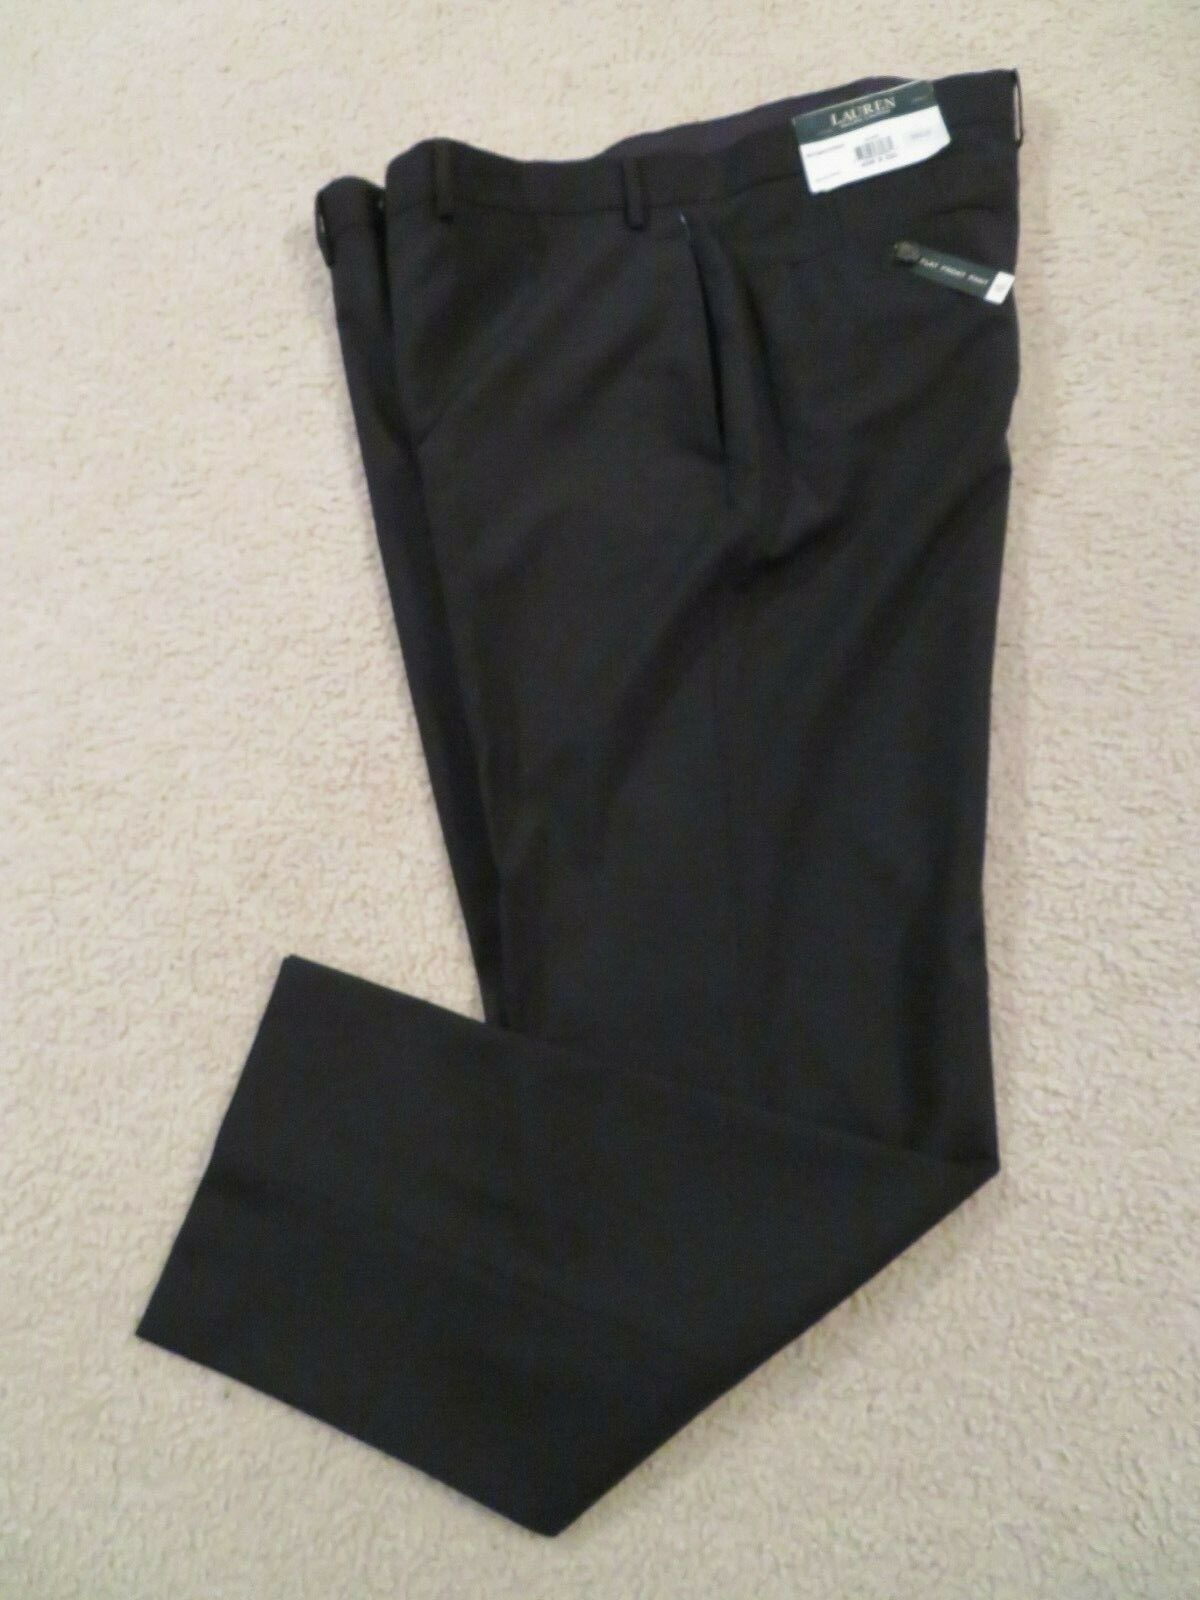 LAUREN RALPH LAUREN LINED WOOL-POLY DRESS PANTS- MADE IN INDIA -40 X 32 -NWT